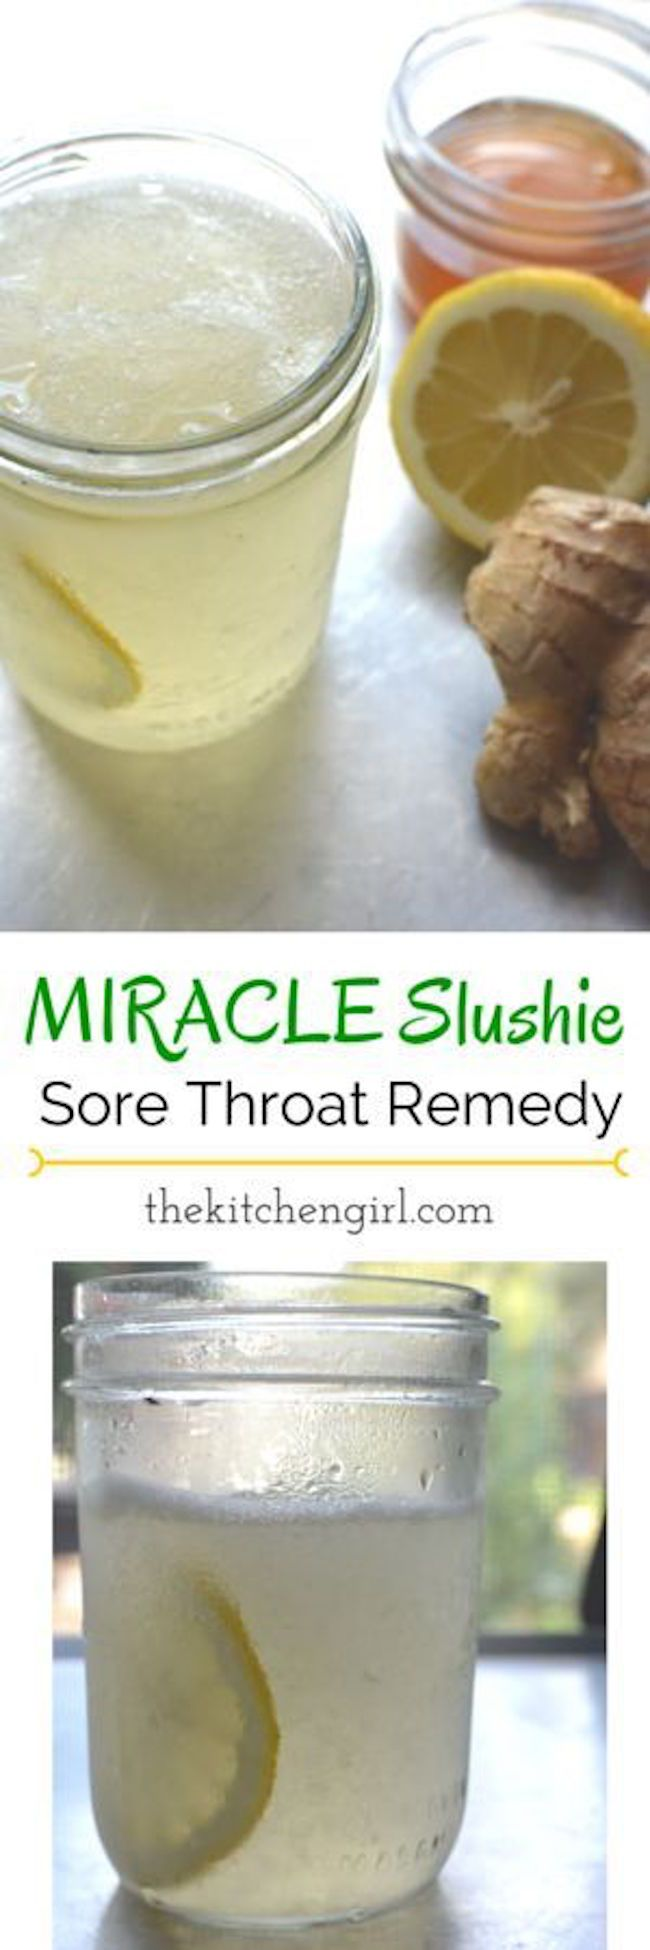 The 11 Best DIY Cough and Cold Remedies -  Miracle sore throat slushies